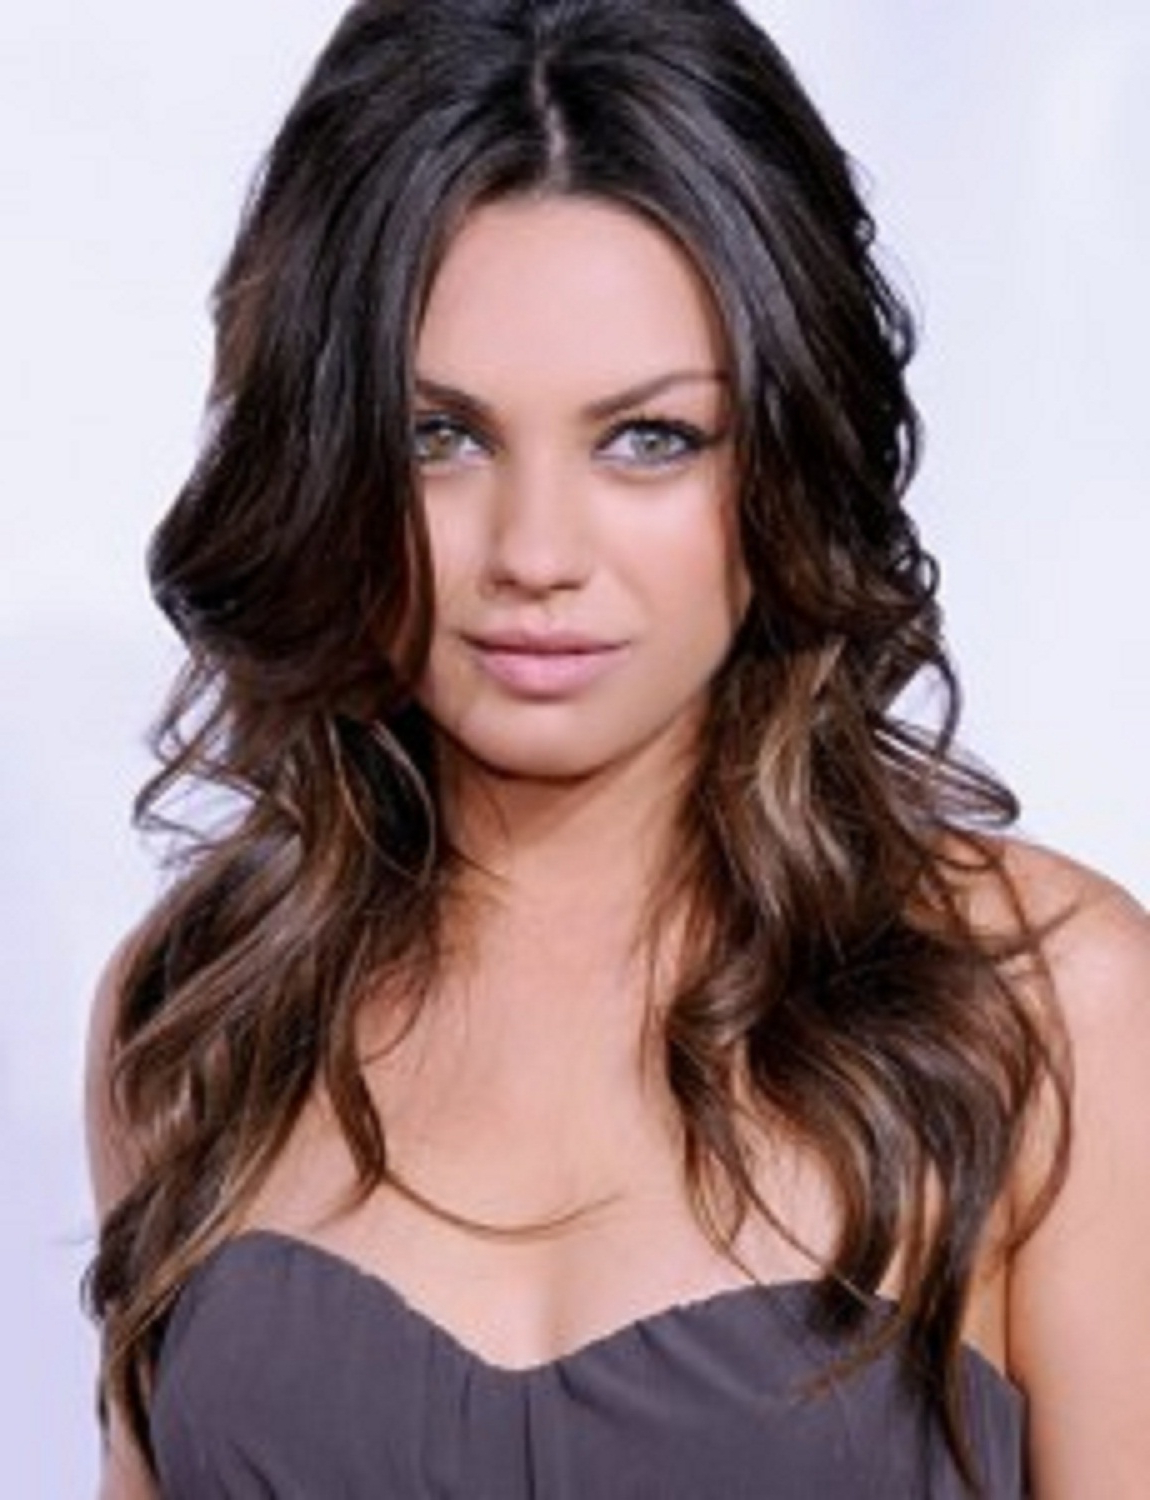 Black Hair Brown Highlight Images   Modern Fashion Styles Regarding Black Hairstyles With Brown Highlights (View 13 of 20)